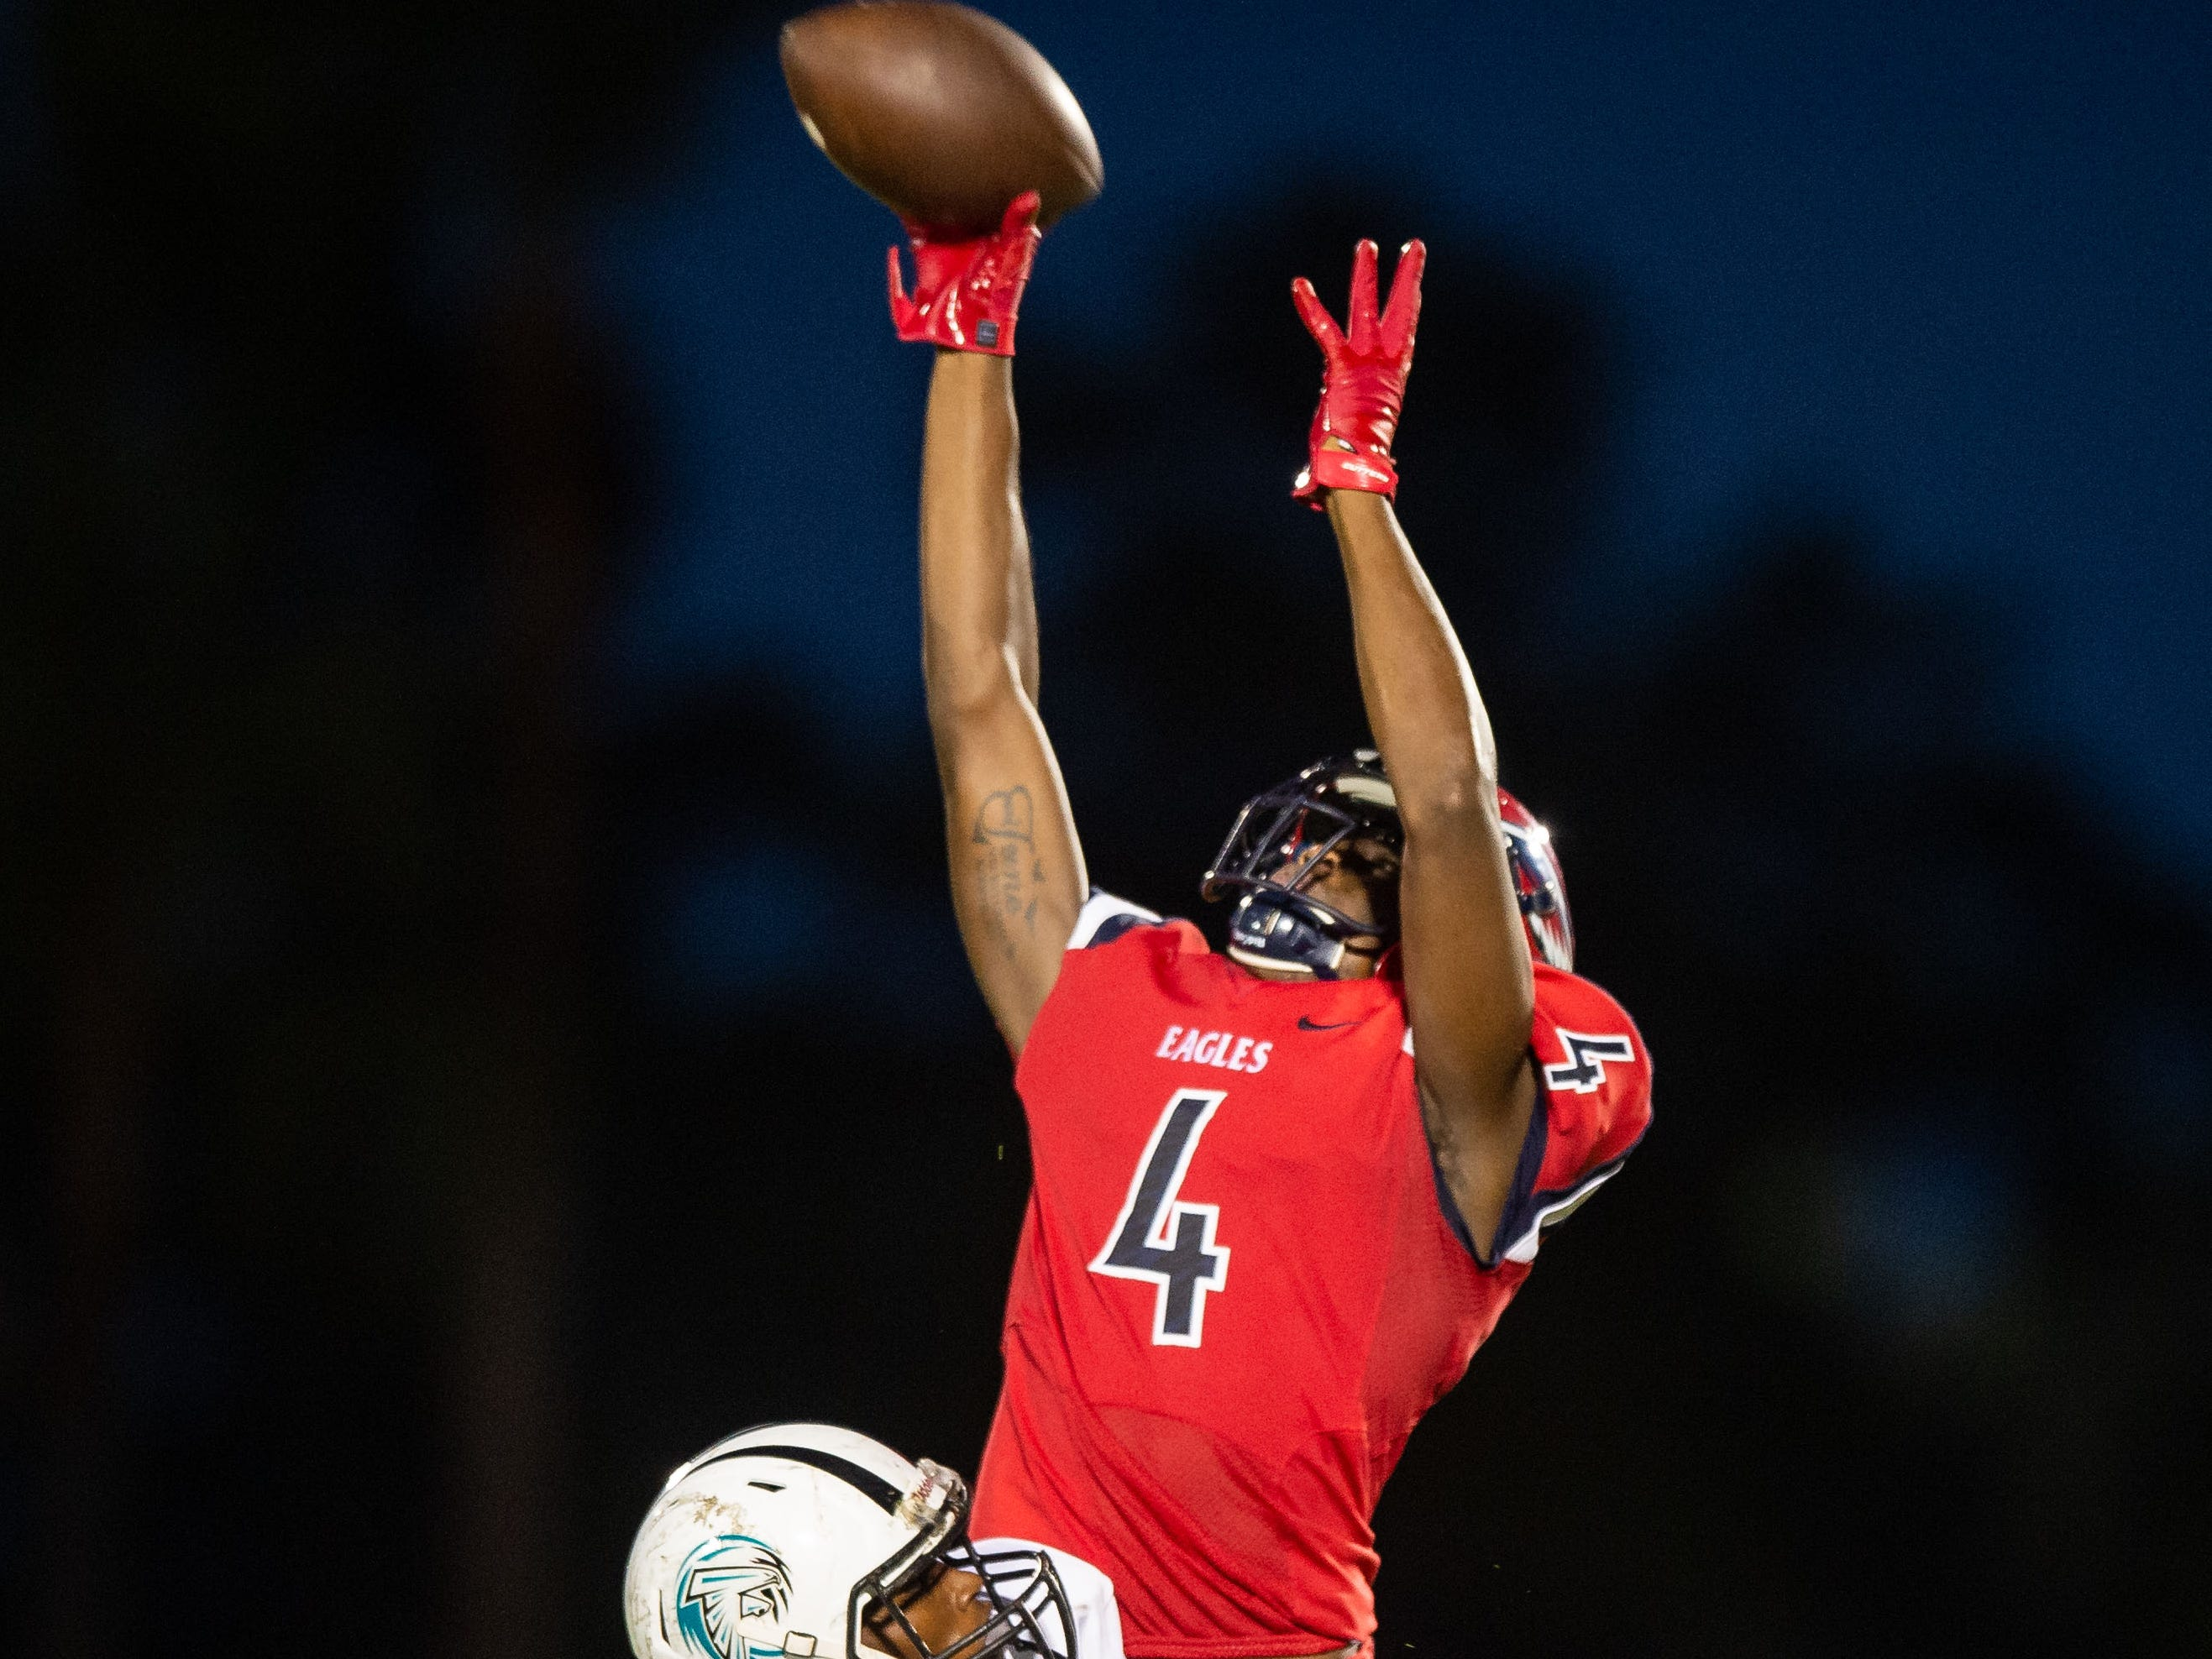 St. Lucie West Centennial's Trequan Collins leaps to catch the ball, then runs downfield into scoring position, as Jensen Beach's Terrence Wilson defends in the third quarter of the high school football game Wednesday, Aug. 29, 2018, at South County Regional Stadium in Port St. Lucie.